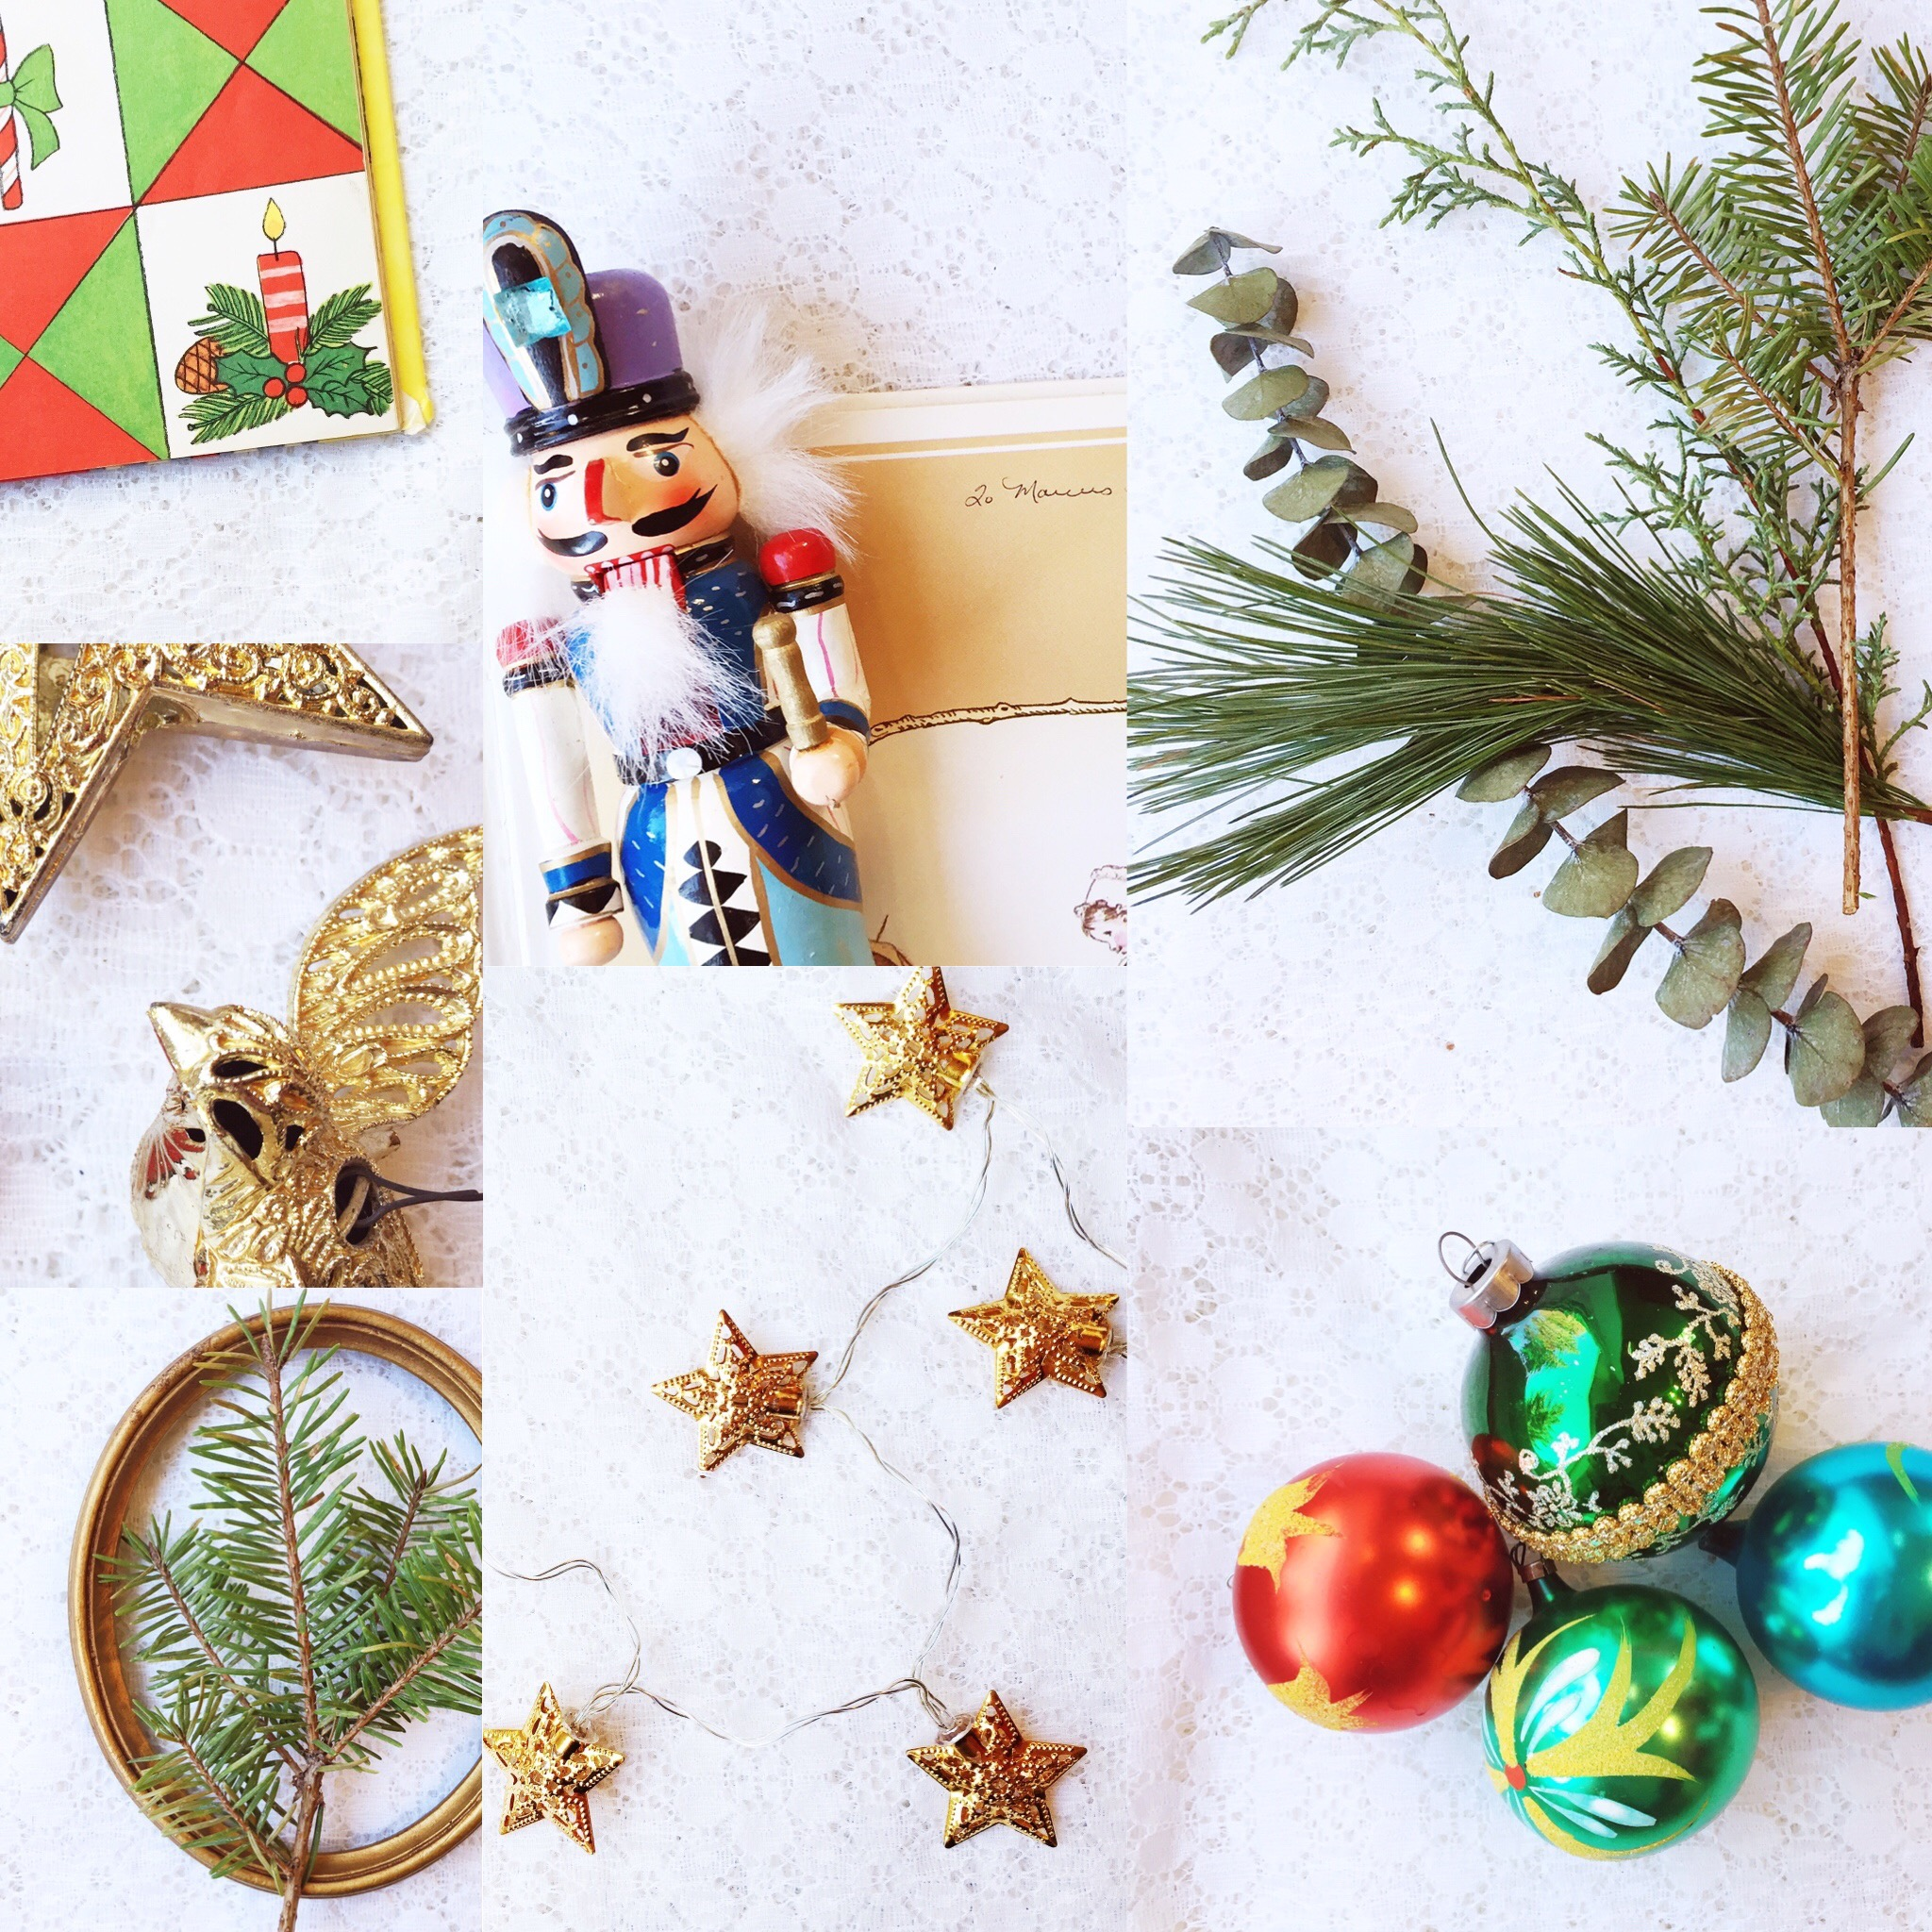 Weekly Color Inspiration: Holiday Rainbow - Christmas Inspo in Green & Gold